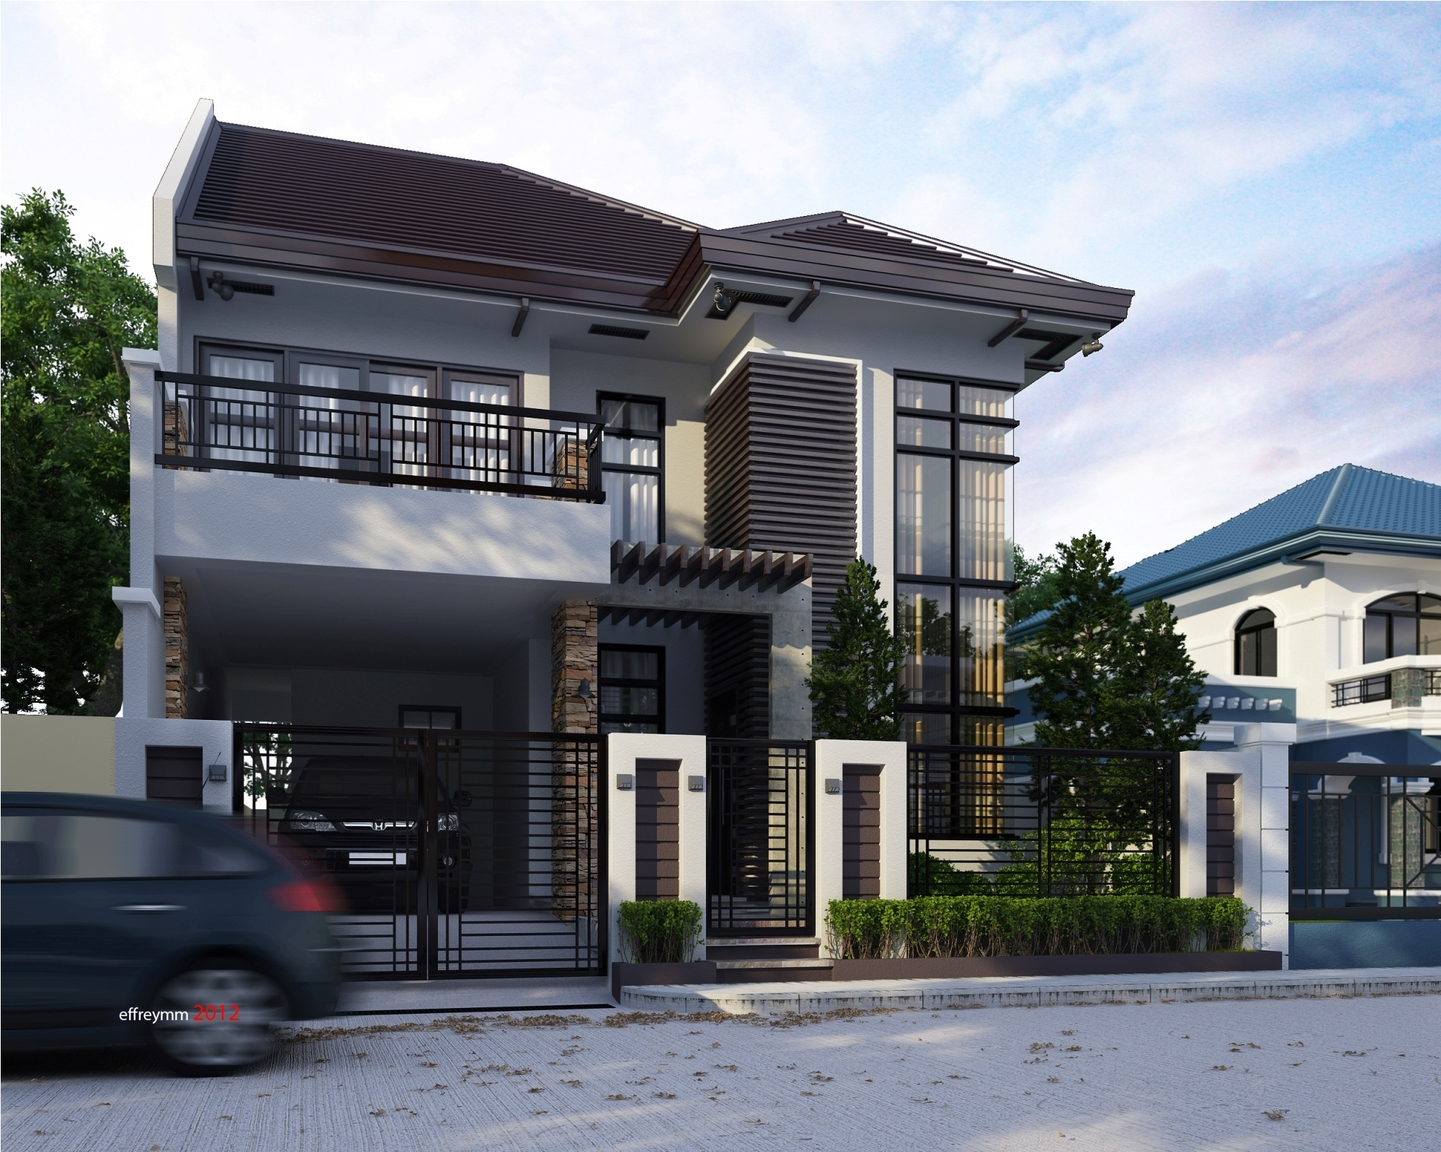 Proposed two storey house for 300 sqm house design philippines